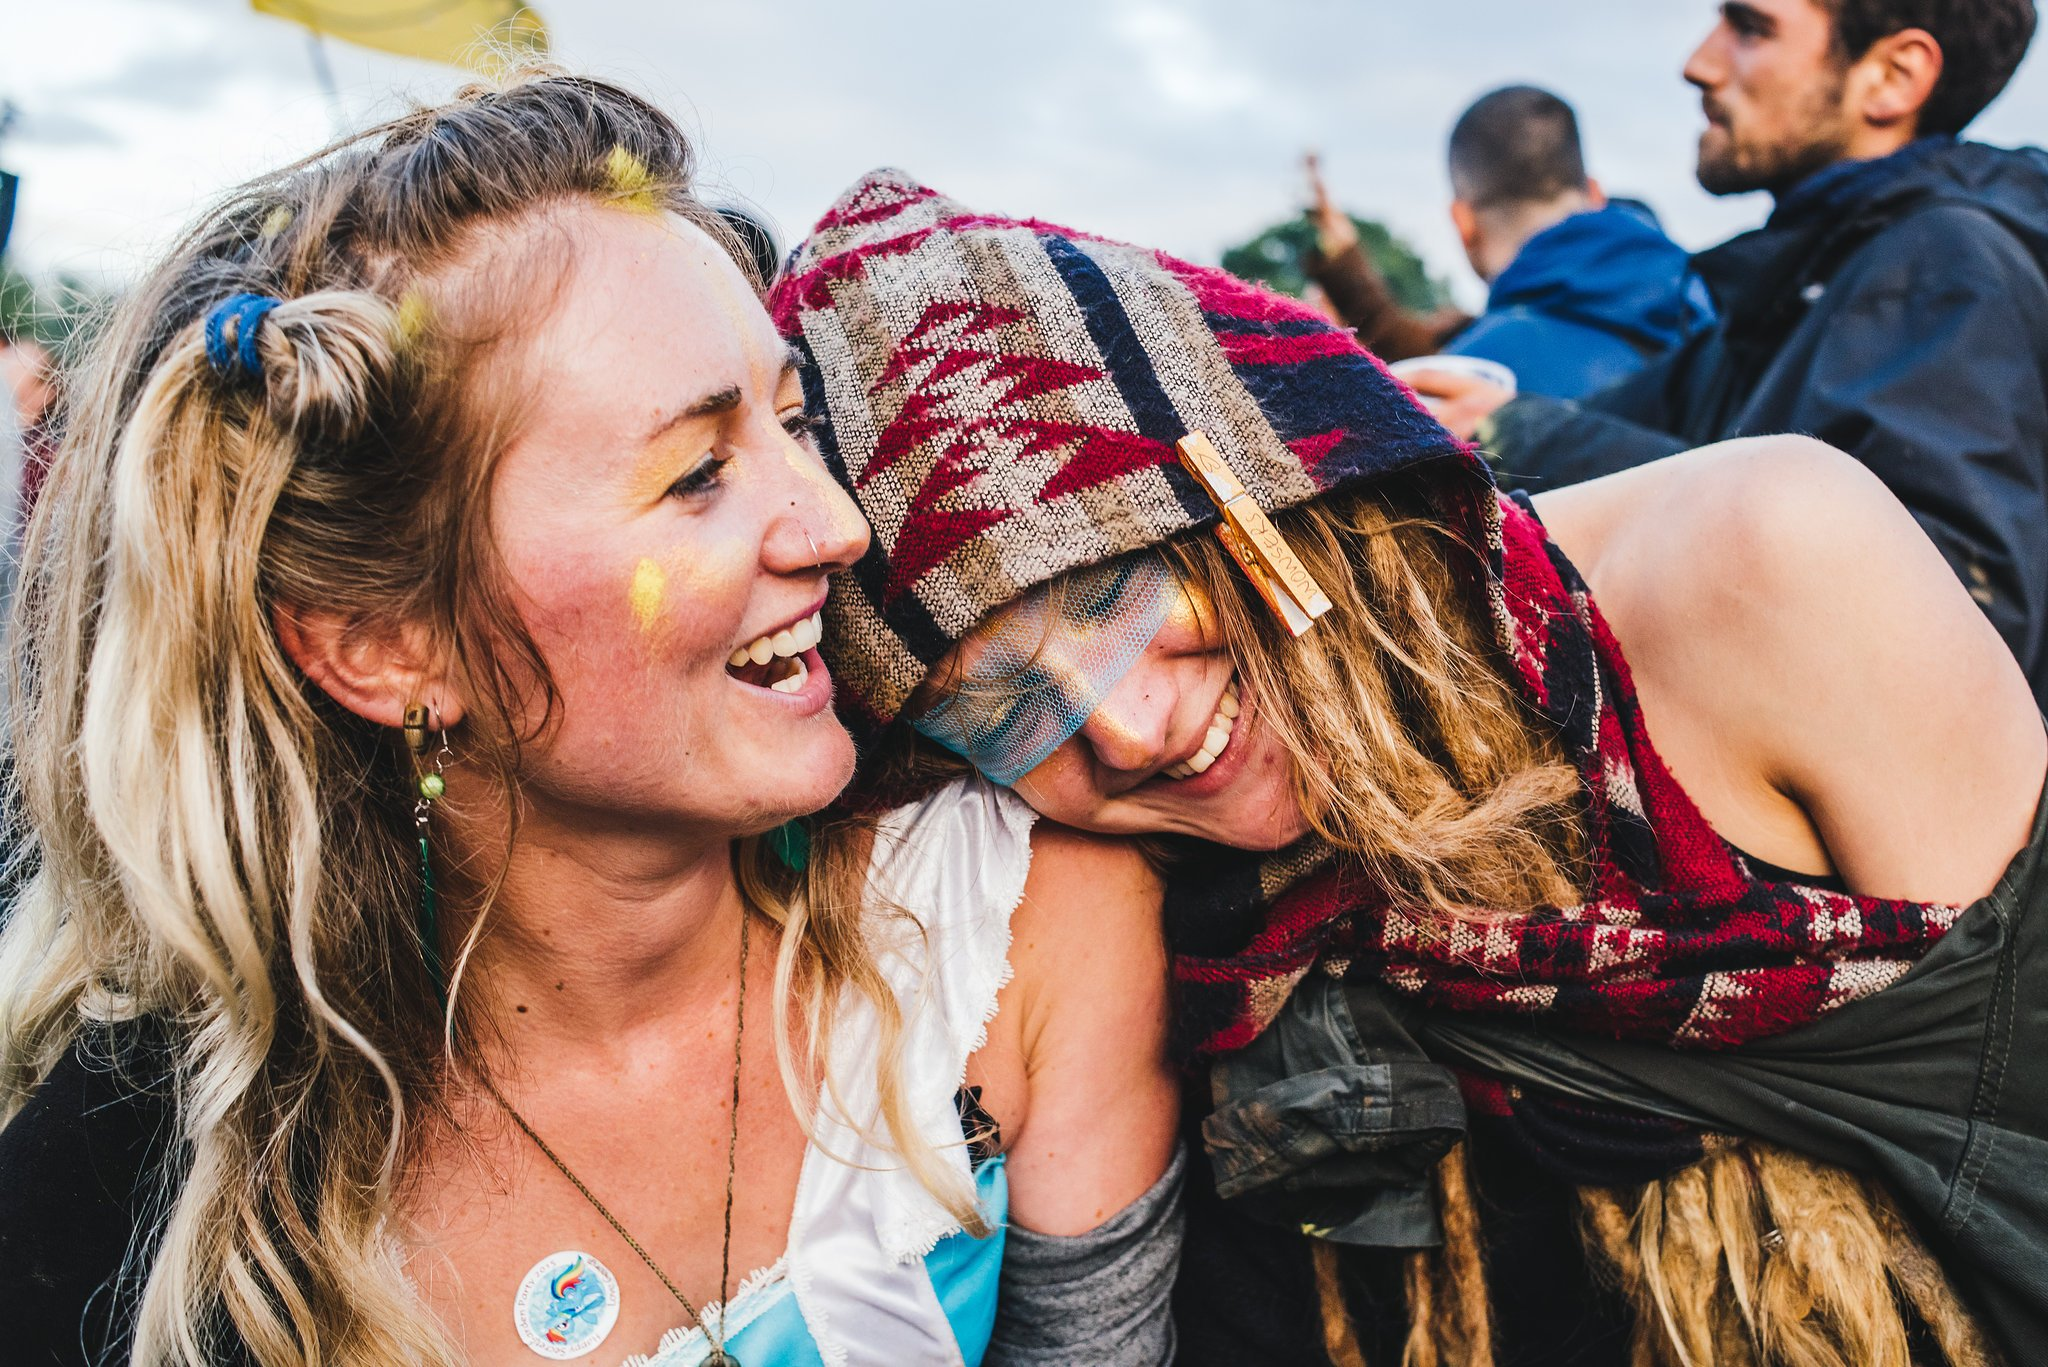 Justine Trickett - Secret Garden Party 2015 - 14d38eca-340d-11e5-8e87-92ce347ad47a - Web